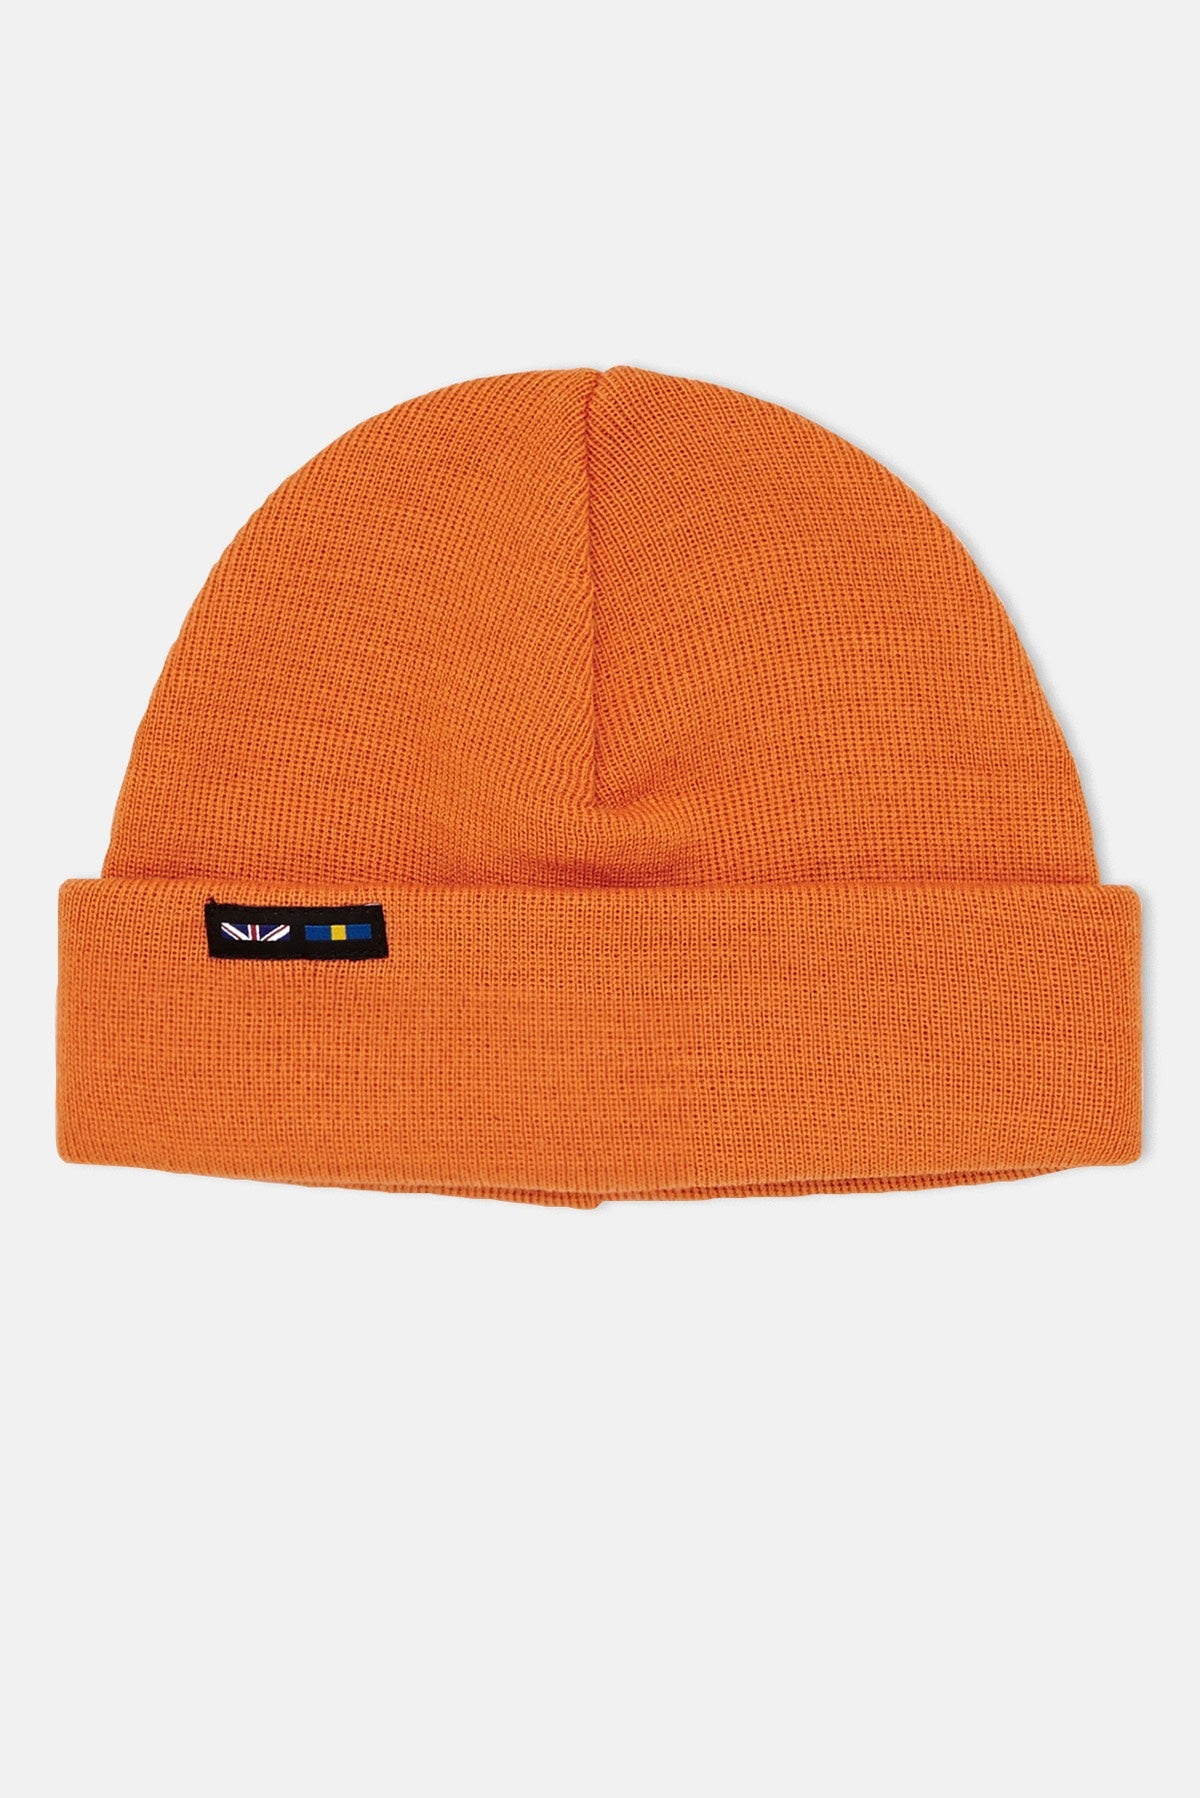 73b7126318d9c Nigel Cabourn X Peak Performance Beanie available from Priory